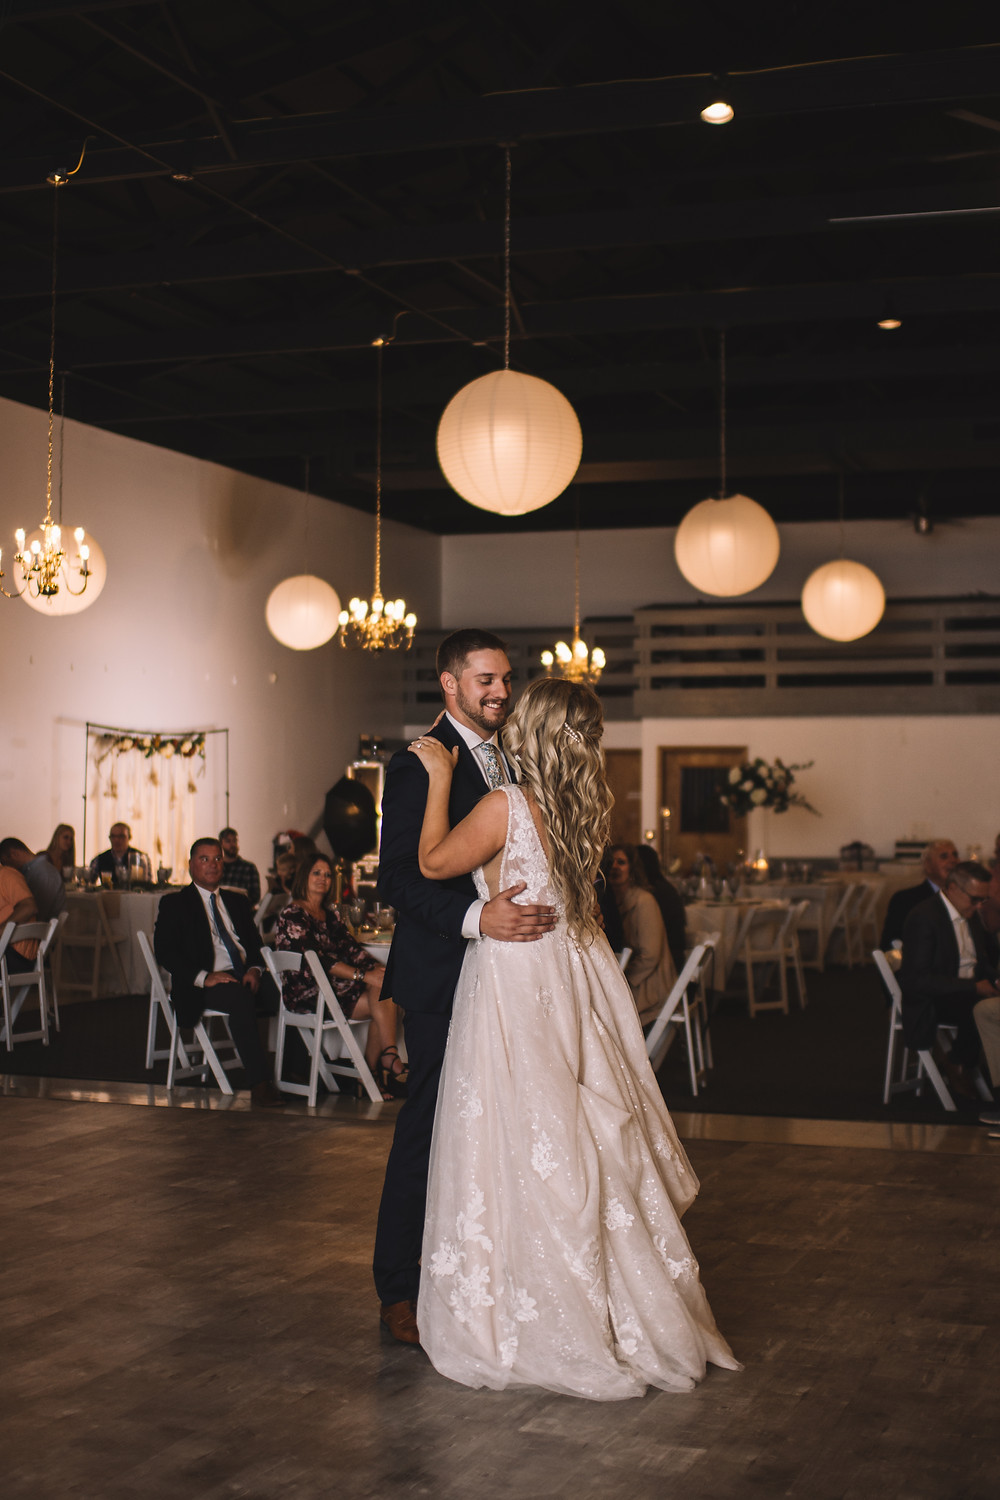 Lincoln Banquet Center, Lincoln, IL, Illinois, Wedding Venue, Central Illinois, Bar, Catering, Handicap Accessible, first Dance, Dance floor, Raised